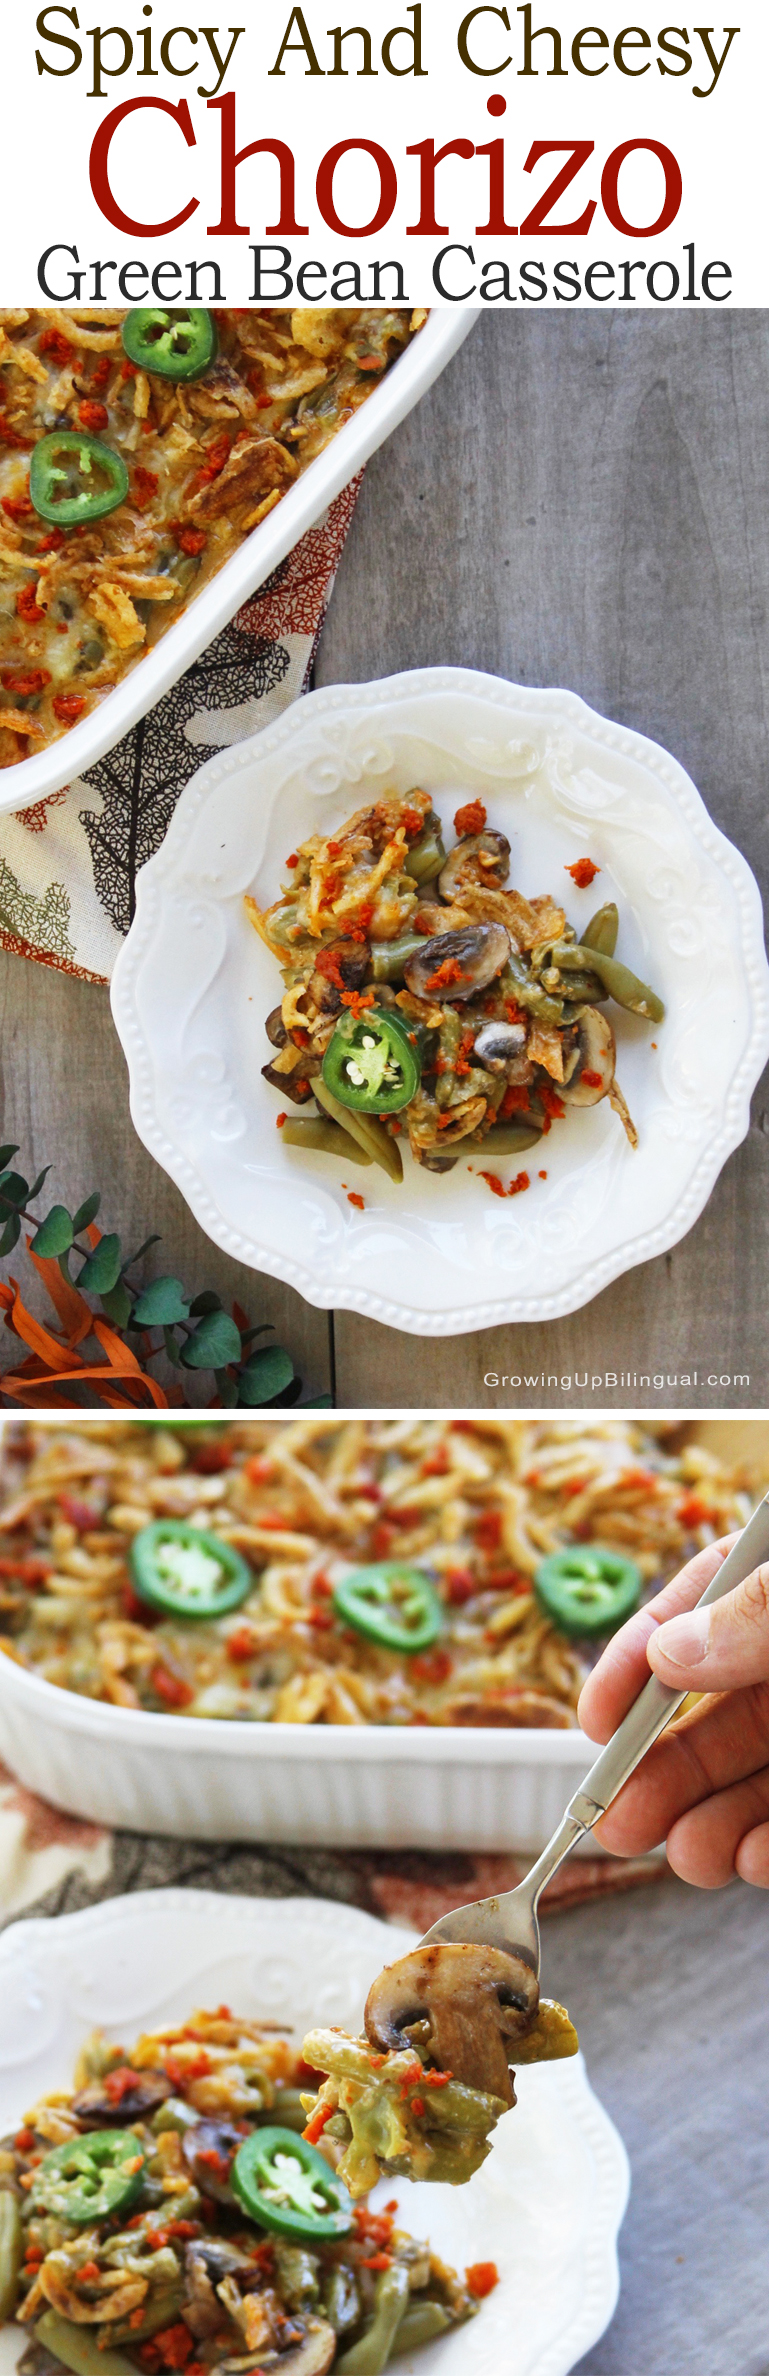 Spicy And Cheesy Chorizo Green Bean Casserole pinterest